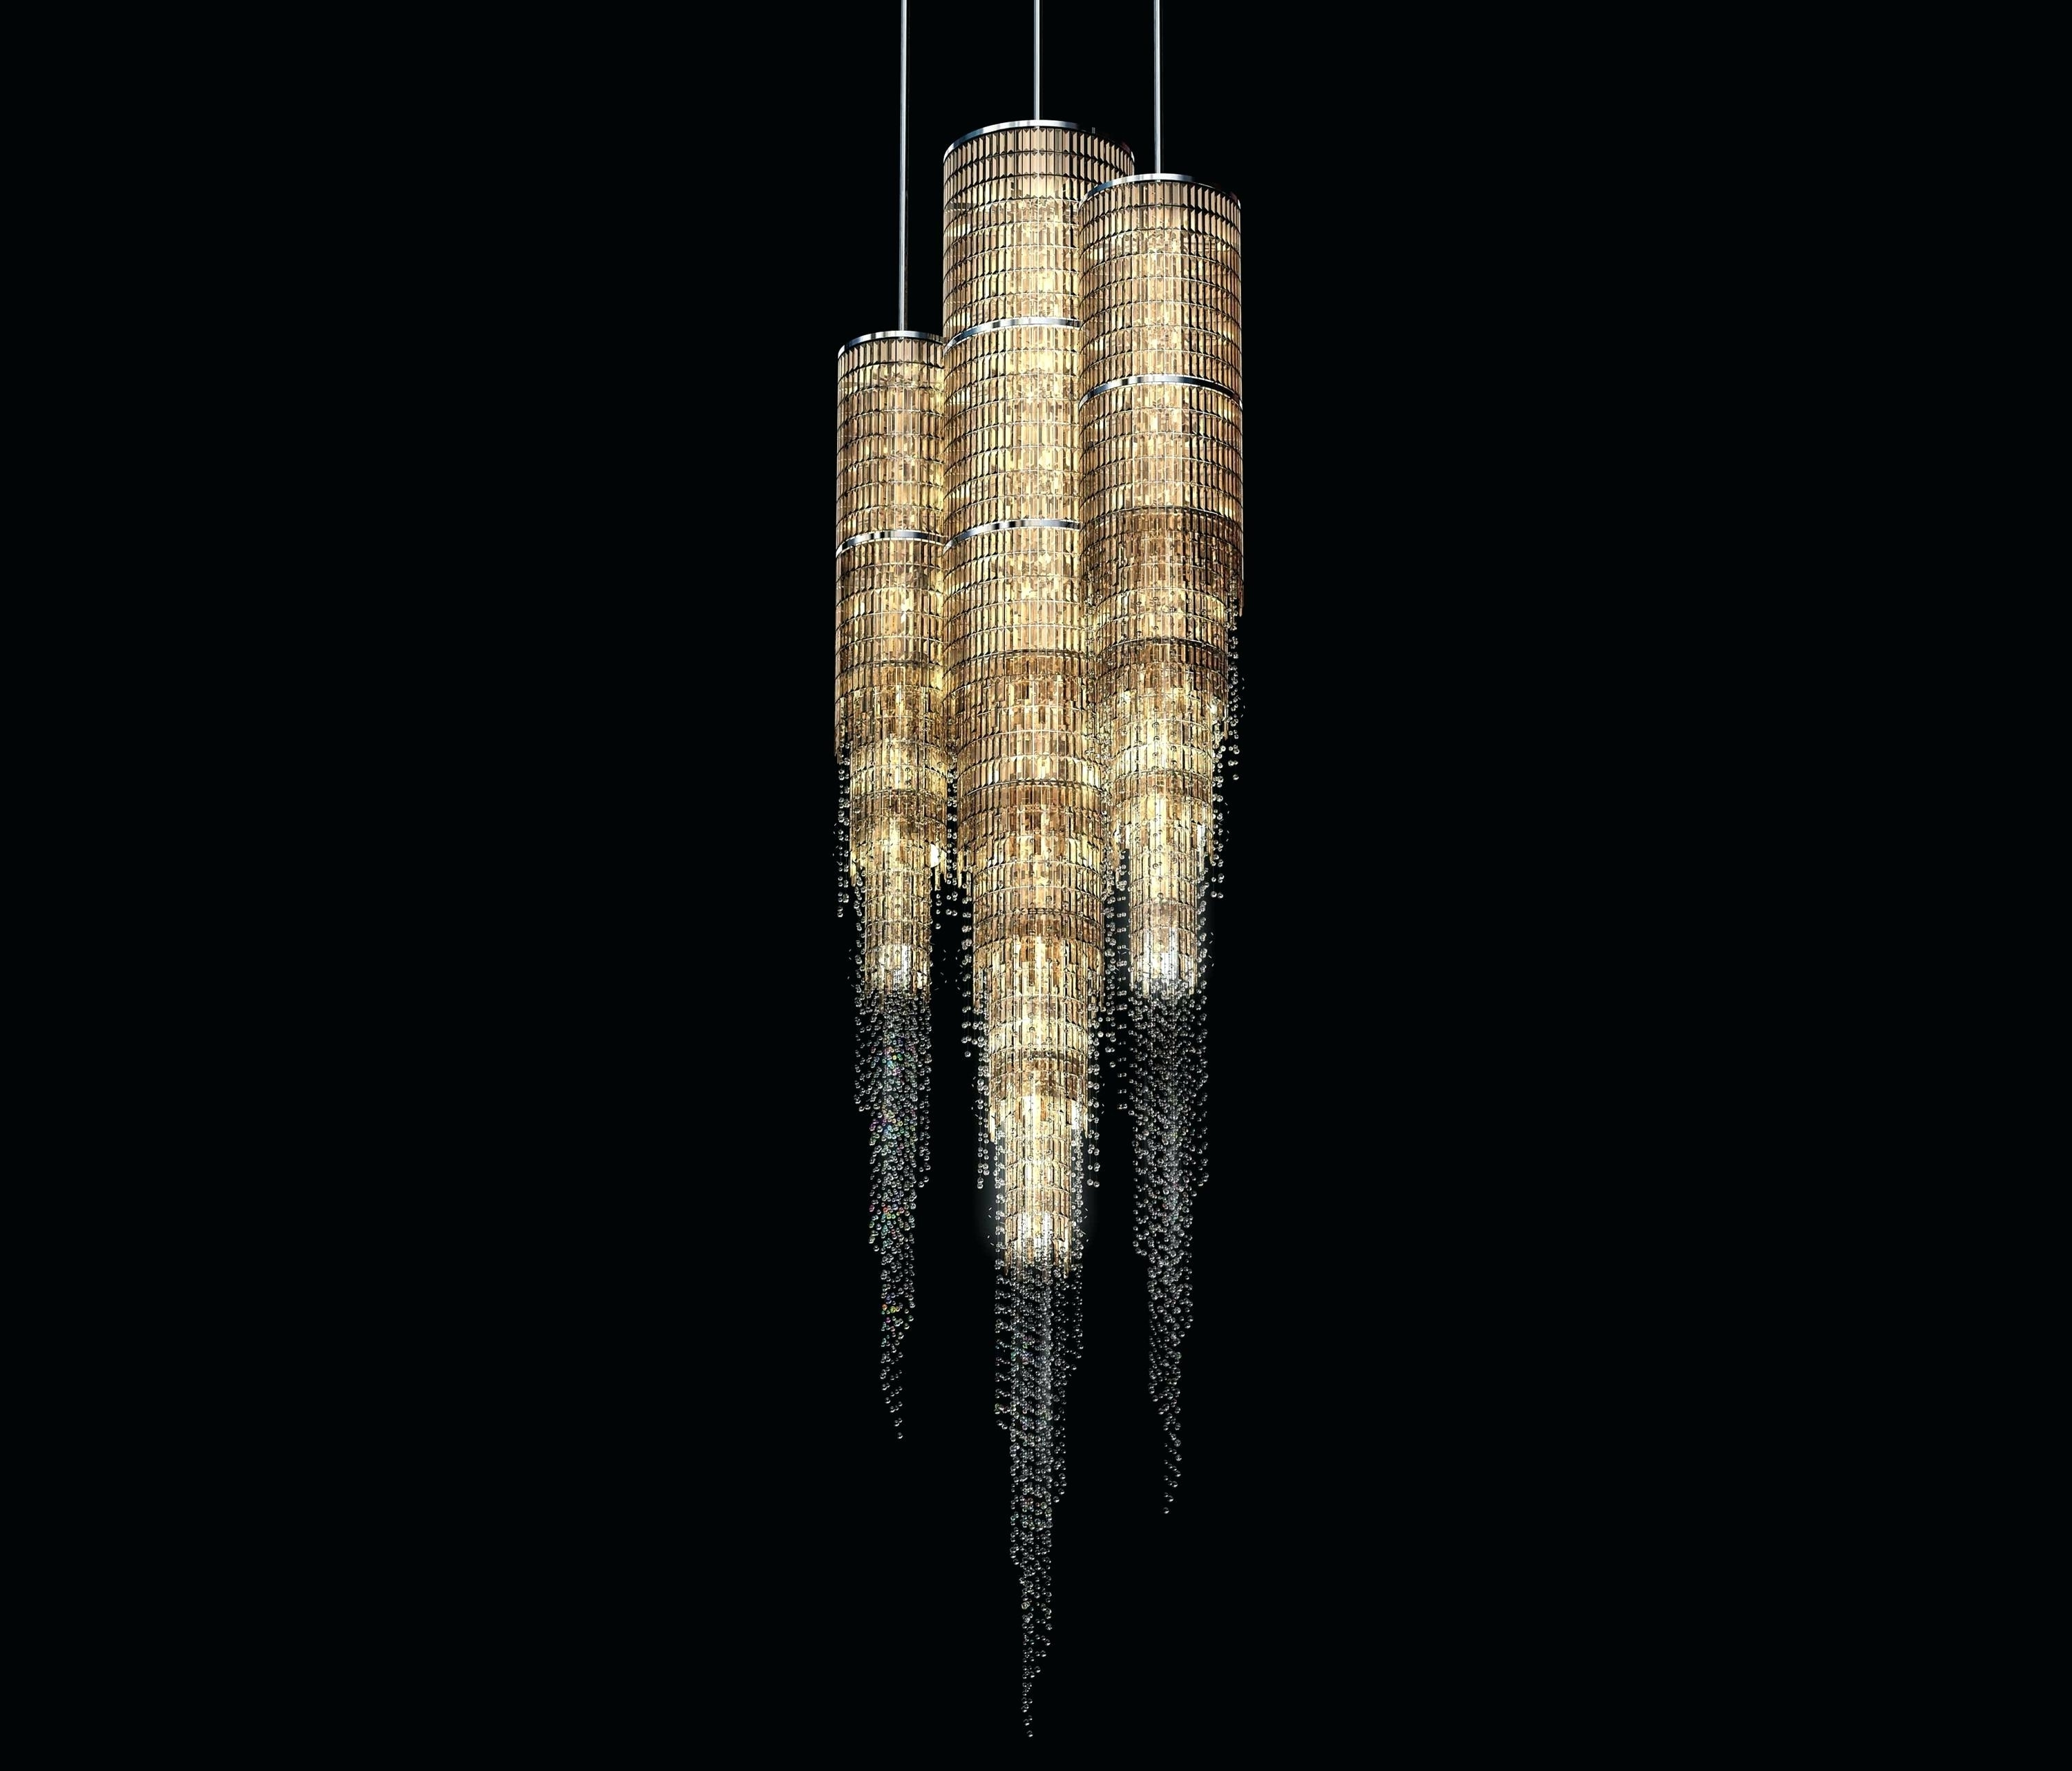 Most Current Unusual Chandeliers Throughout Unusual Chandeliers Glass Lights Uk Contemporary Lighting (View 8 of 20)